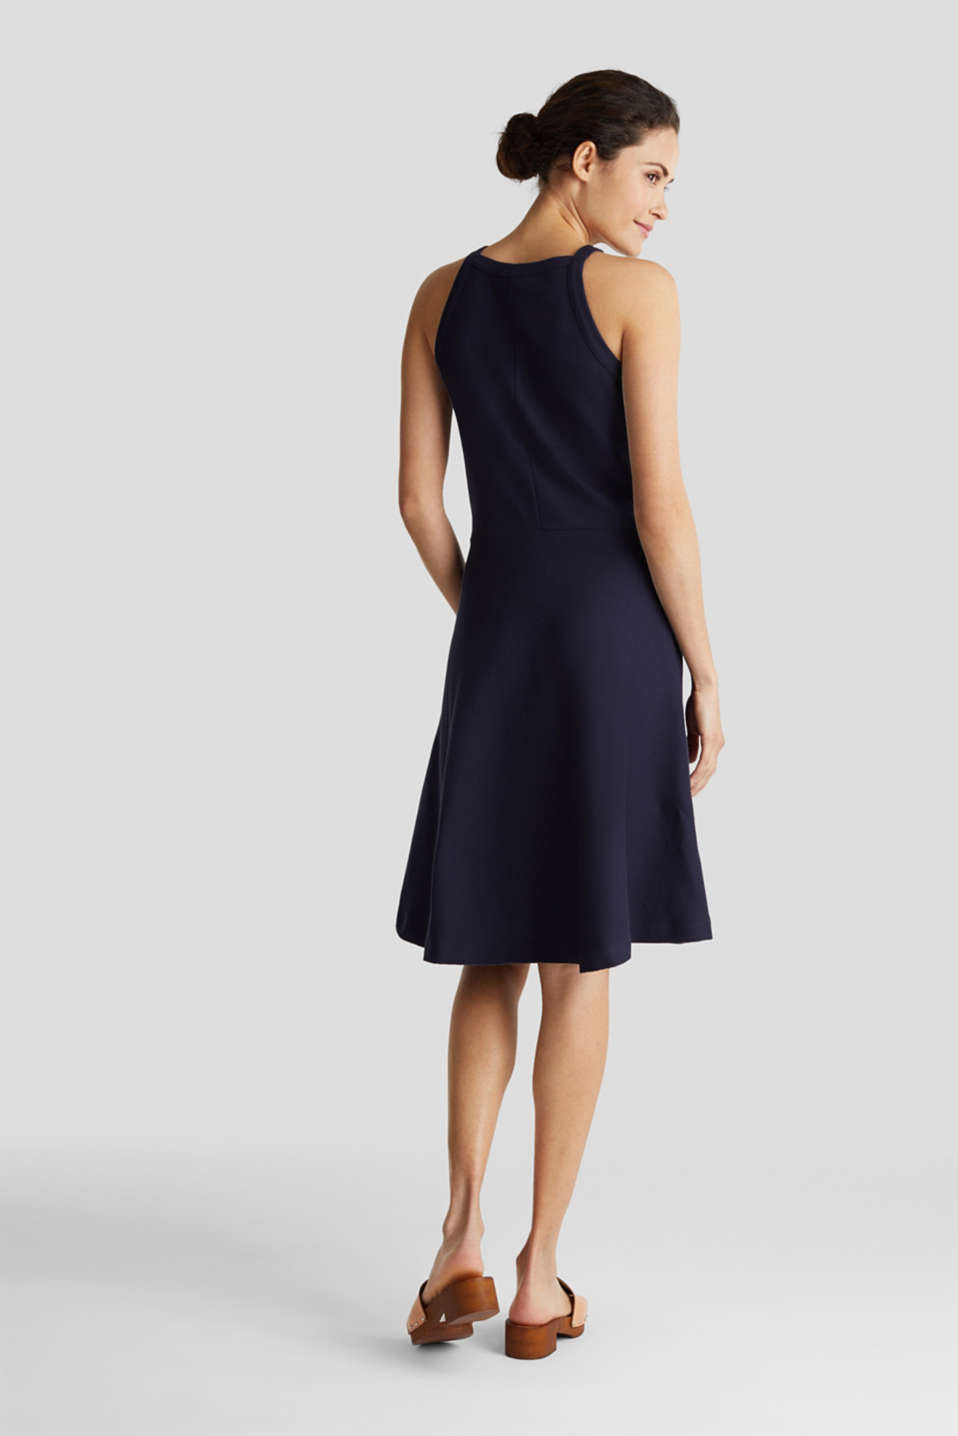 Ribbed stretch jersey dress, NAVY, detail image number 2